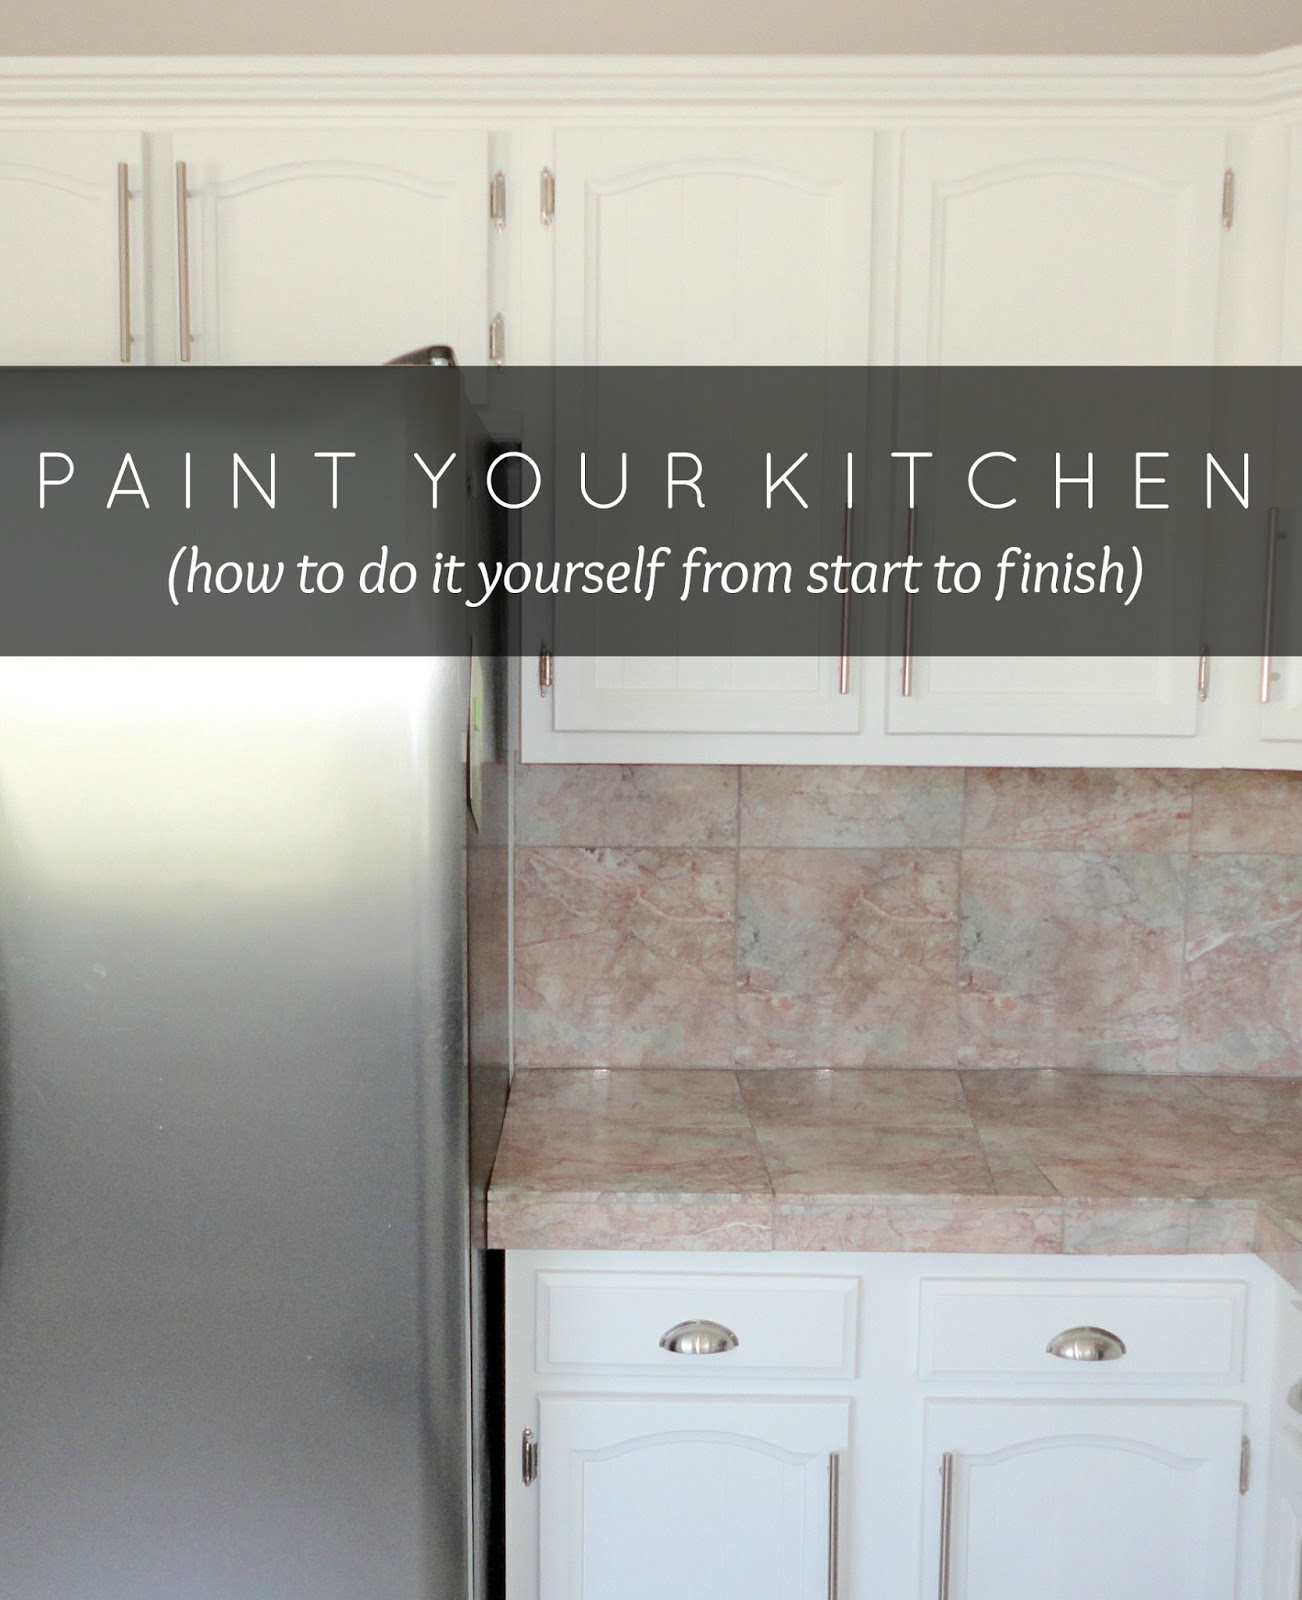 10 easy steps to paint kitchen cabinets kitchen cabinet painting How To Paint Kitchen Cabinets in 10 Easy Steps